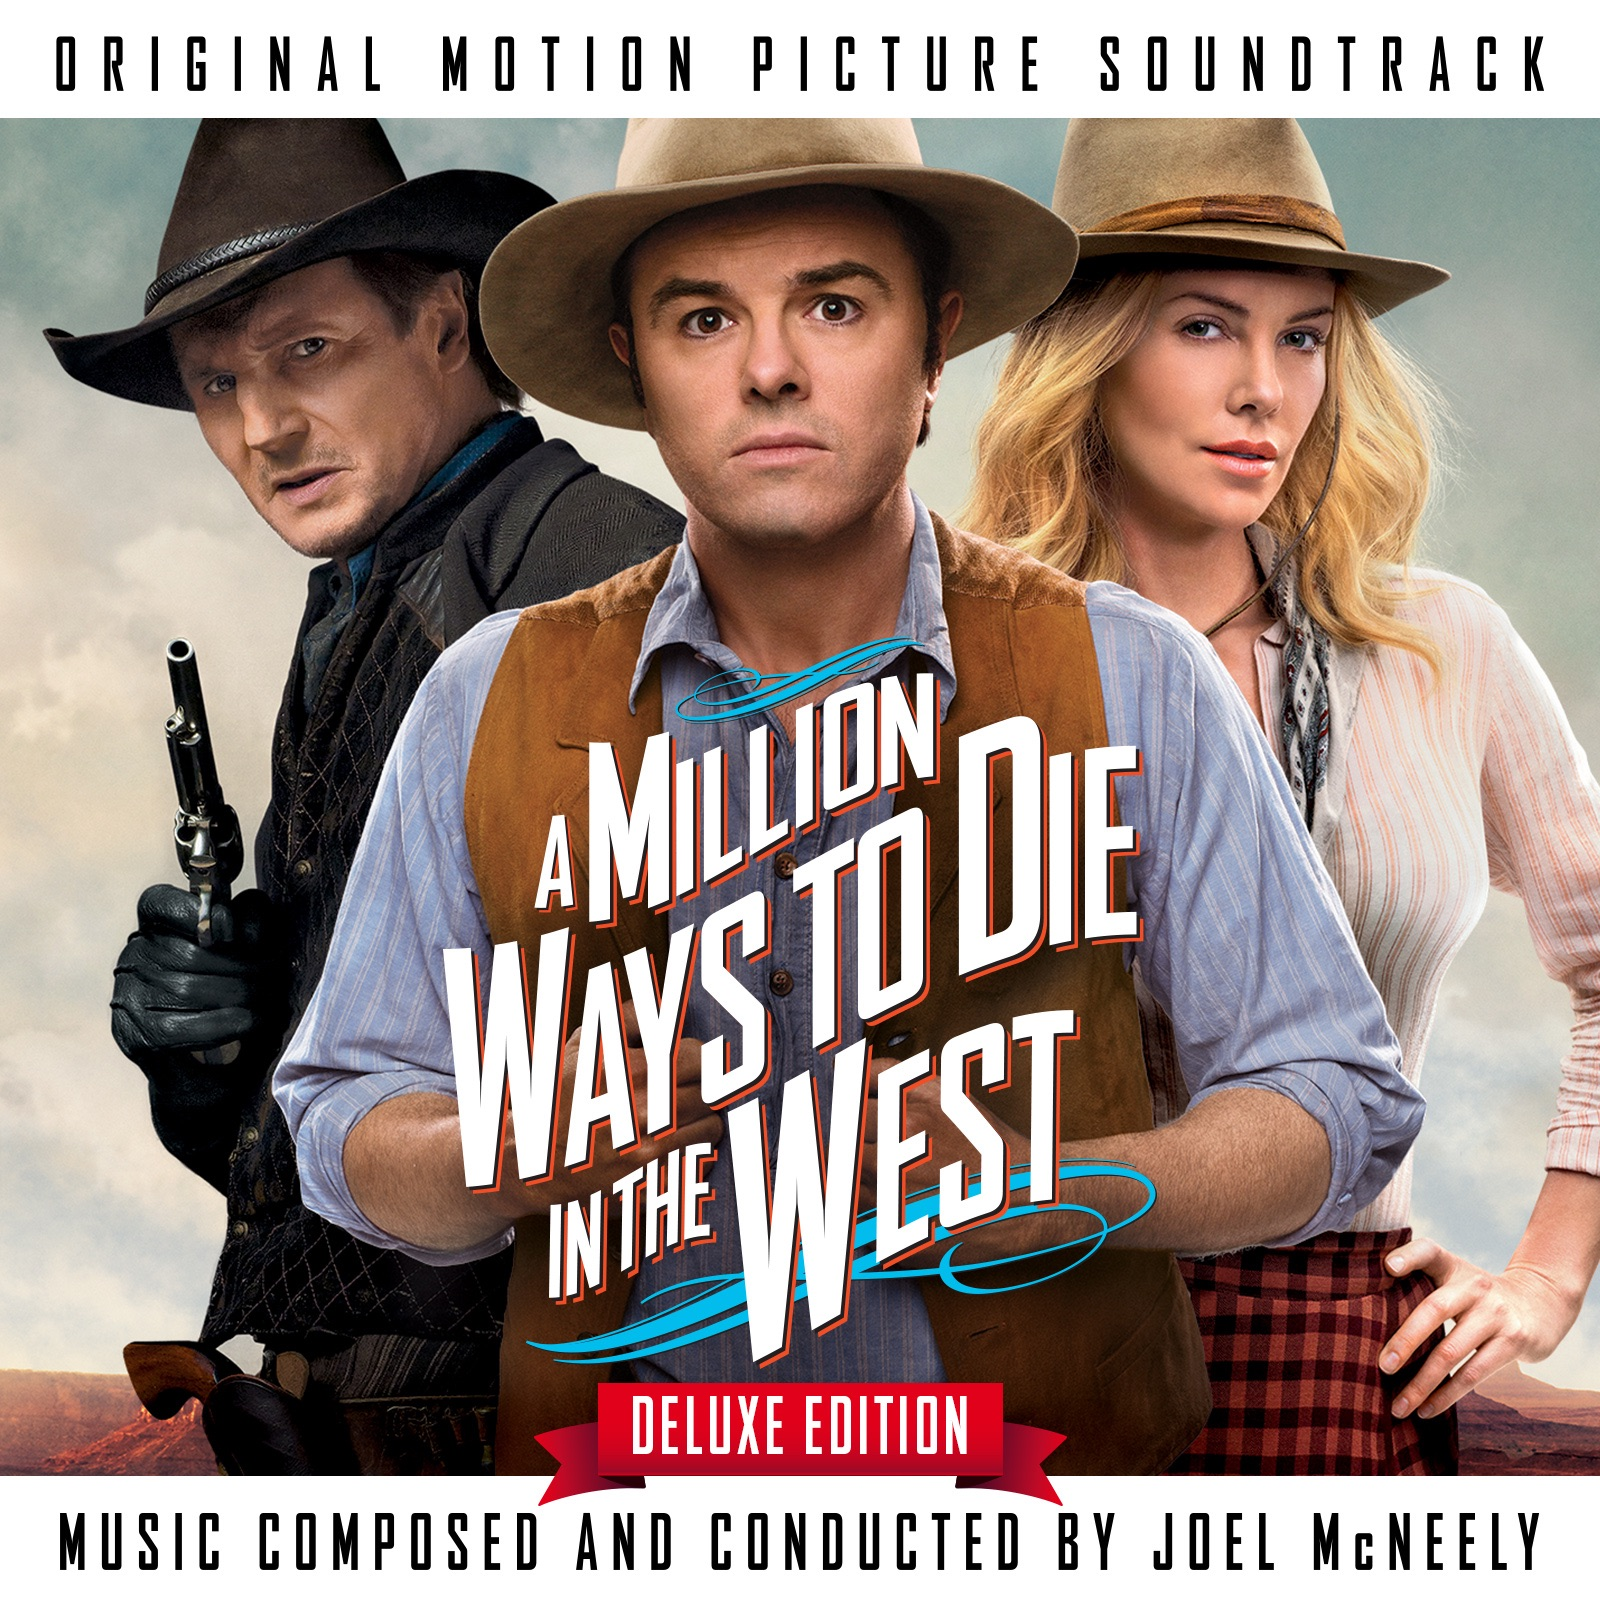 A Million Ways To Die In the West (Original Motion Picture Soundtrack) [Deluxe Edition]